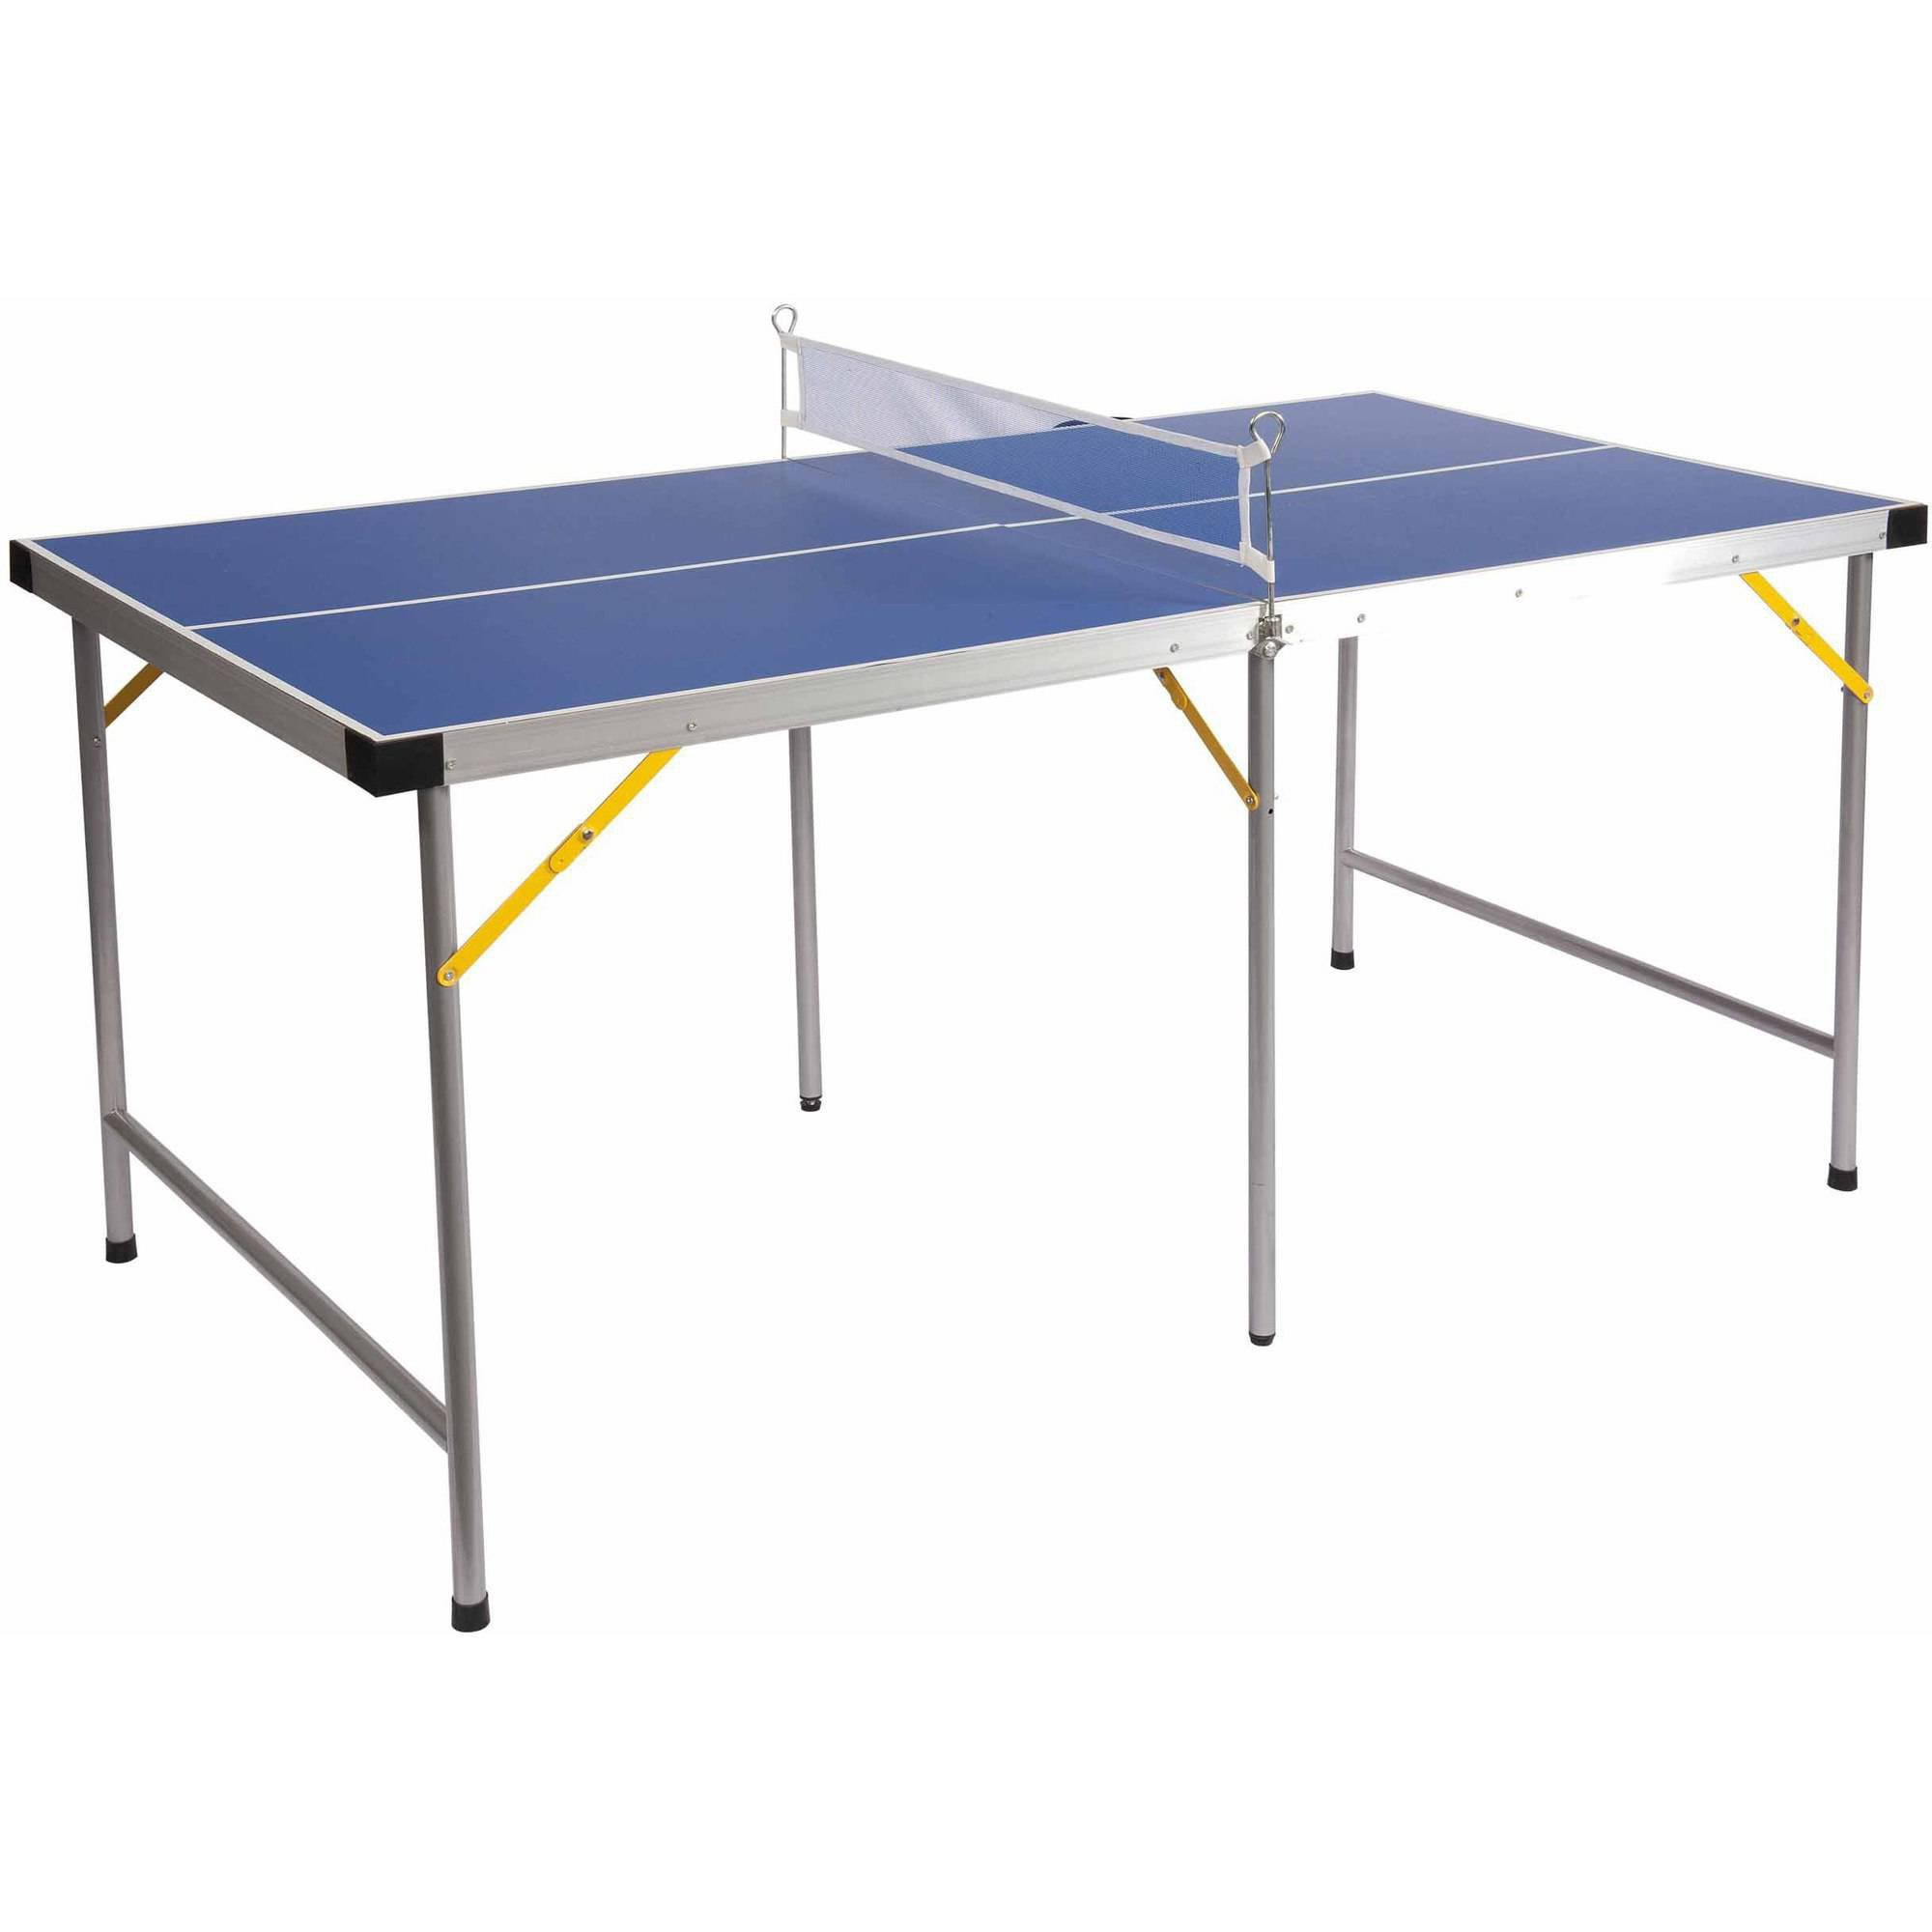 Lion Sports Folding Portable Table Tennis Ping Pong Table, 5'